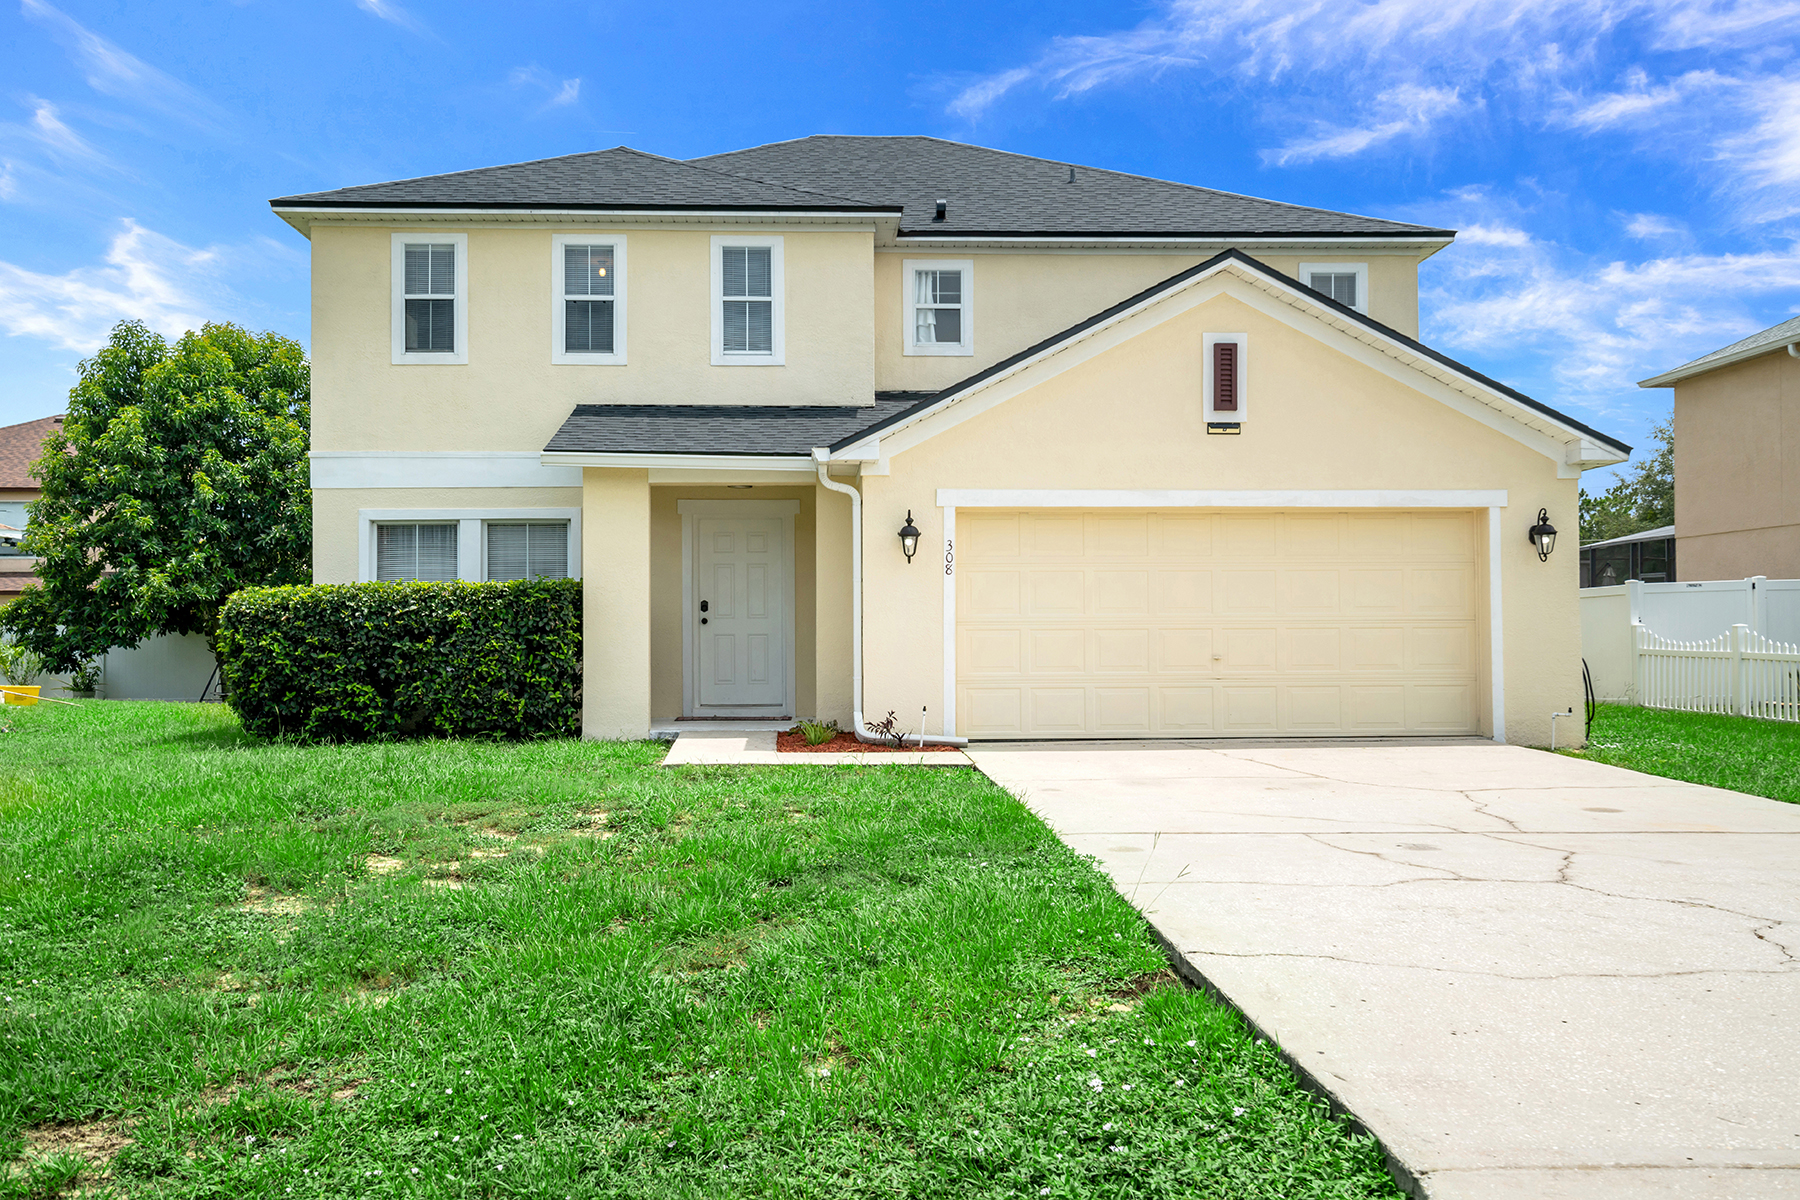 Single Family Homes for Sale at POINCIANA 308 Anchovie Ct Poinciana, Florida 34759 United States